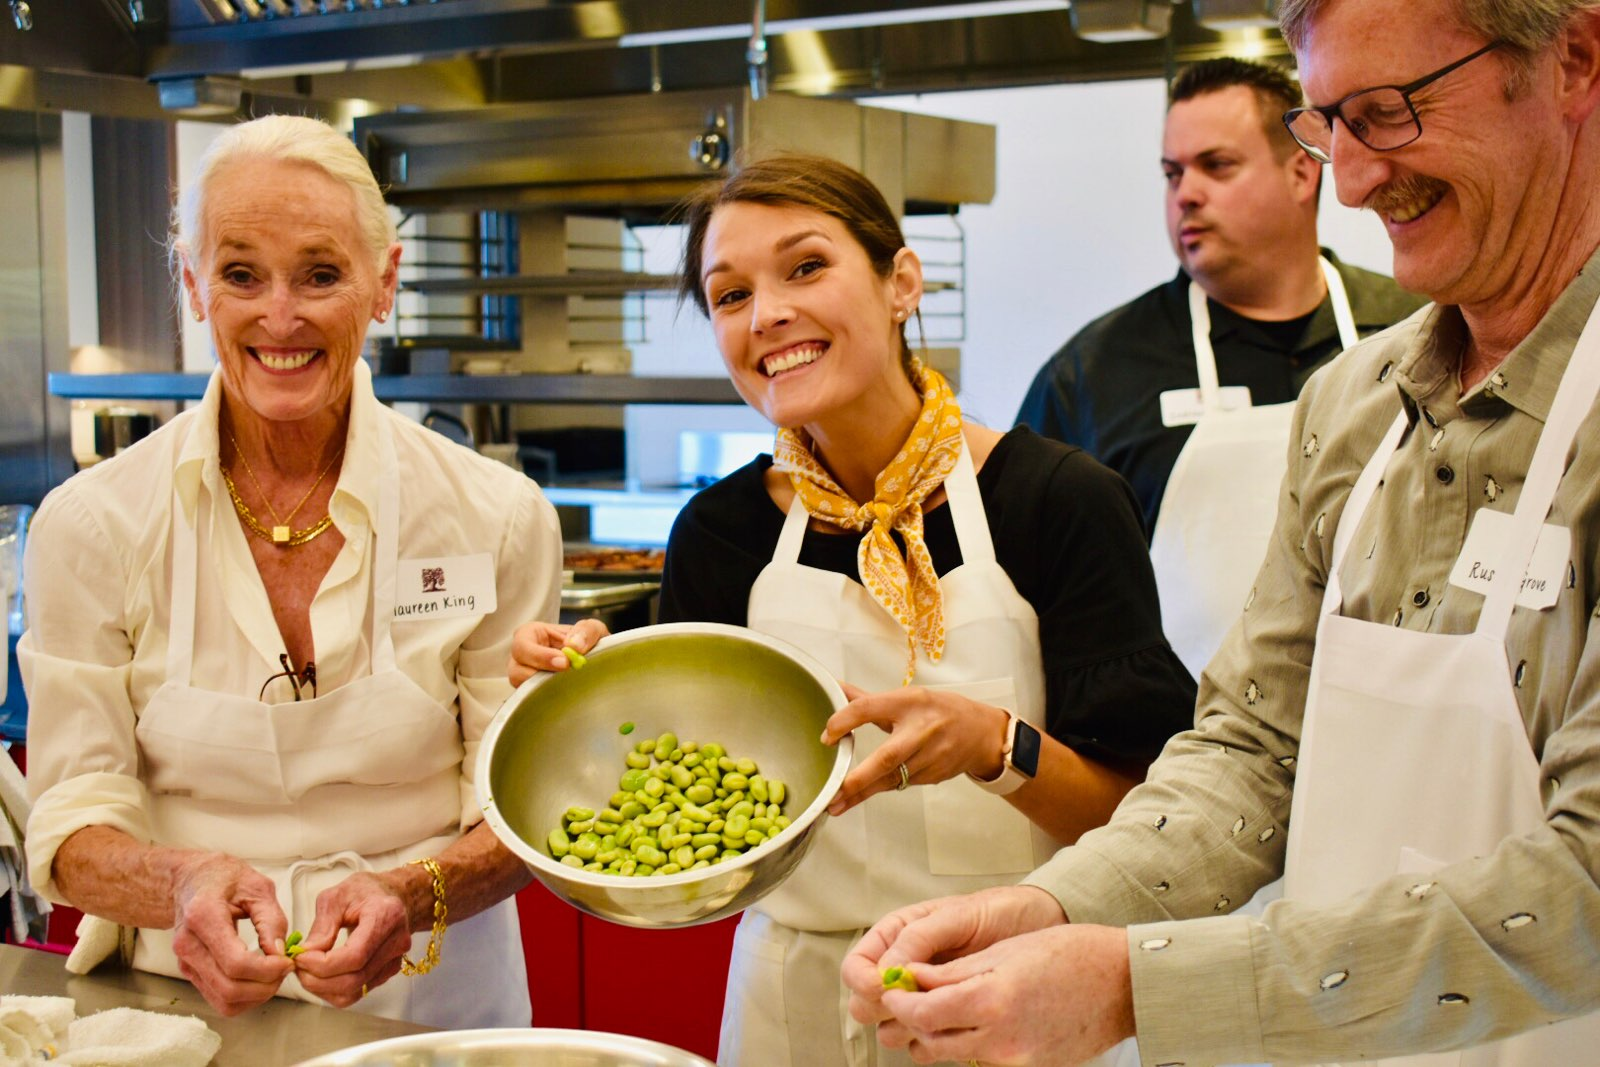 a man and woman cooking food in a bowl: Students at the new Biale cooking class show off fava beans, an ingredient for one of the recipes they learned for the day at CIA Copia.